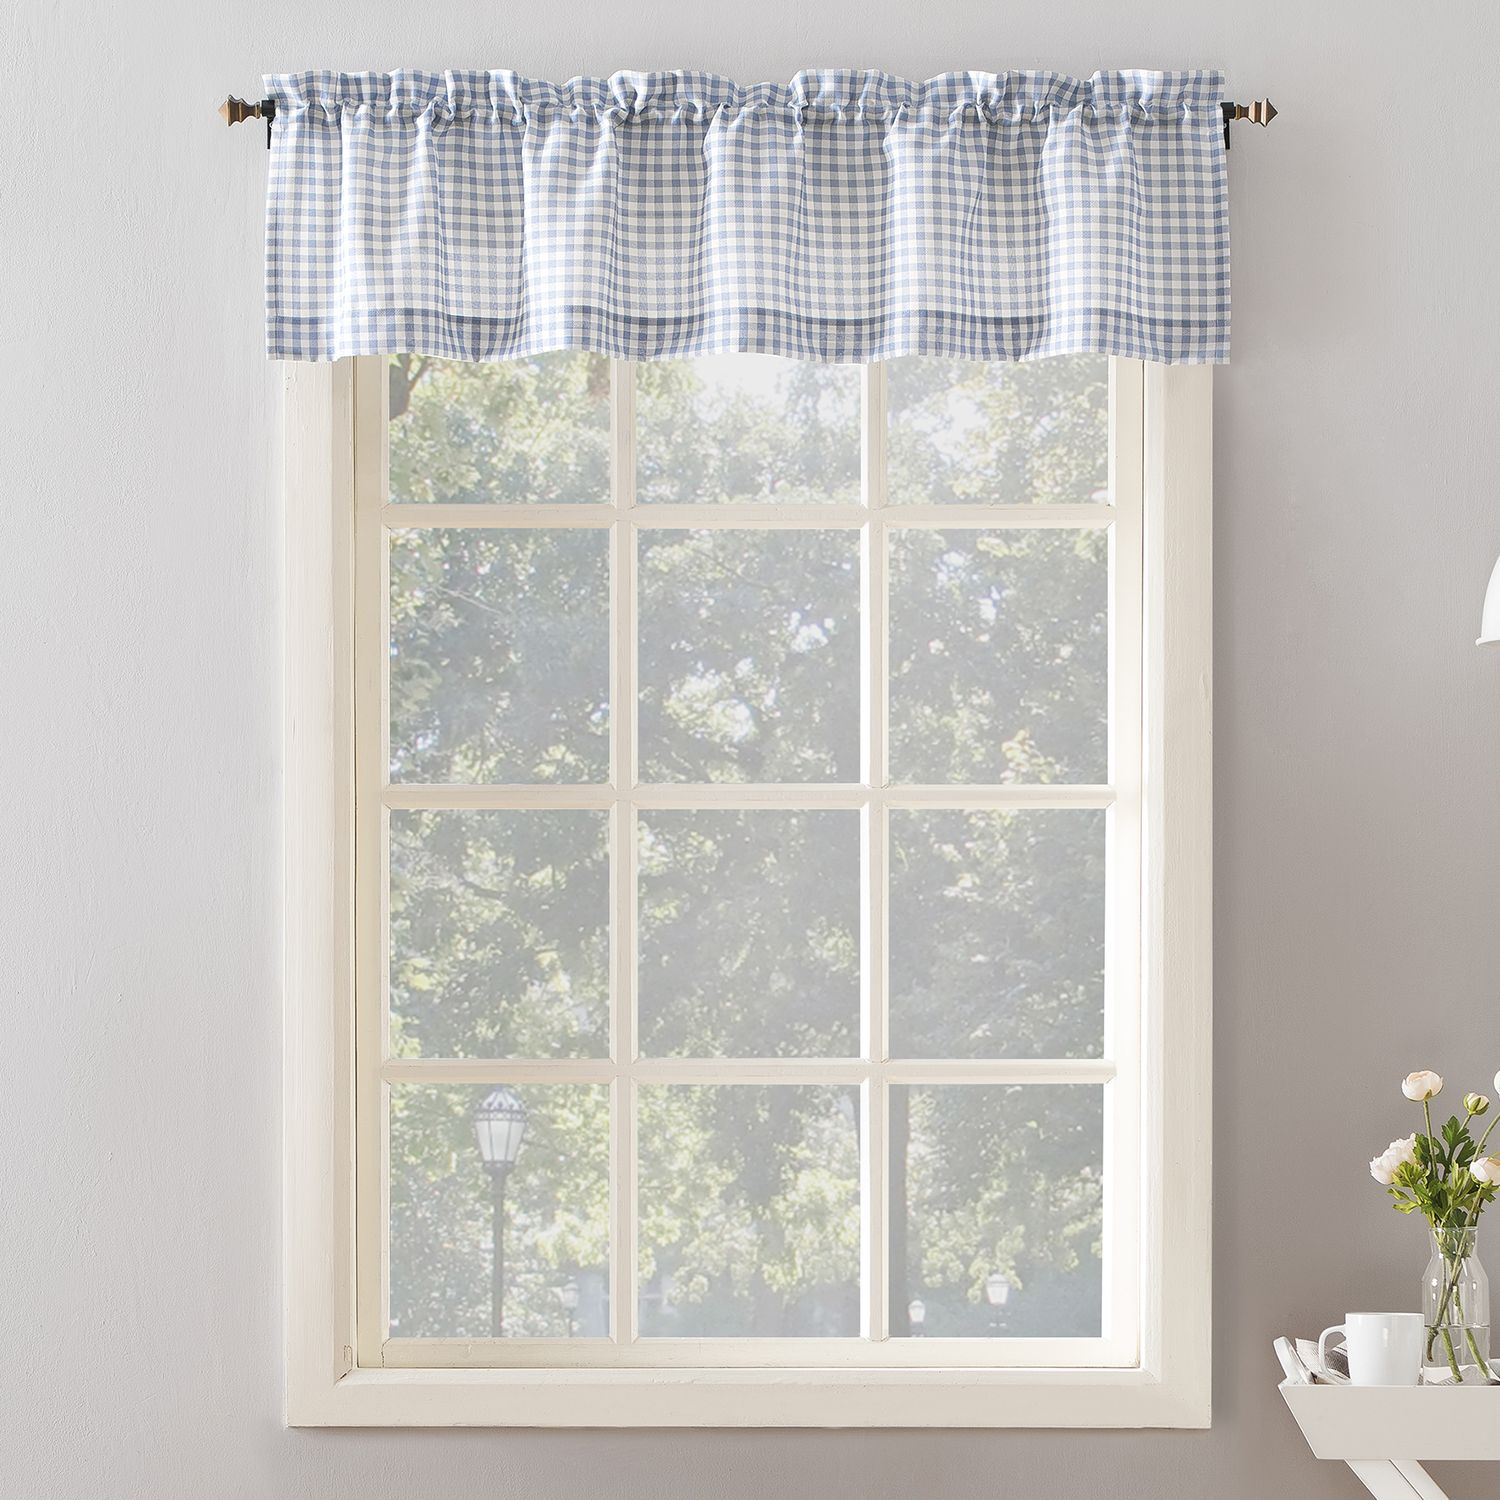 Top Of The Window Cagney Gingham Plaid Kitchen Valance. Blue